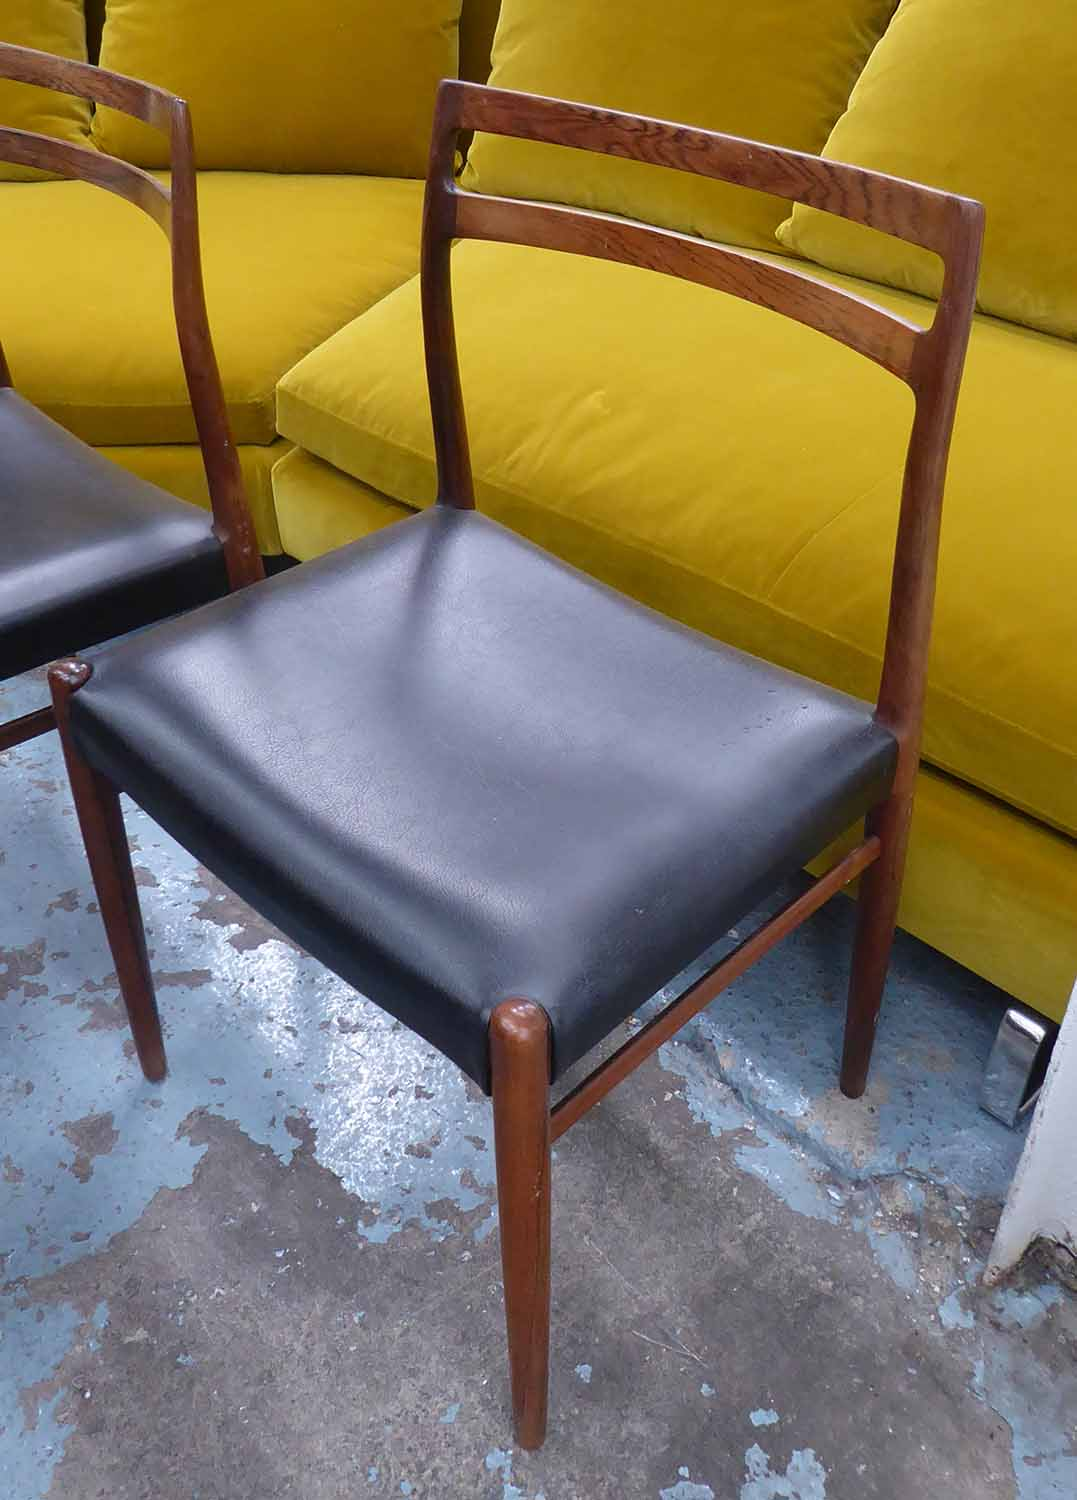 Lot 18 - GUSTAV BAHUS MODEL 147 DINING CHAIRS, a set of six, by Alf Aarseth, 1960's rosewood, 80cm H.